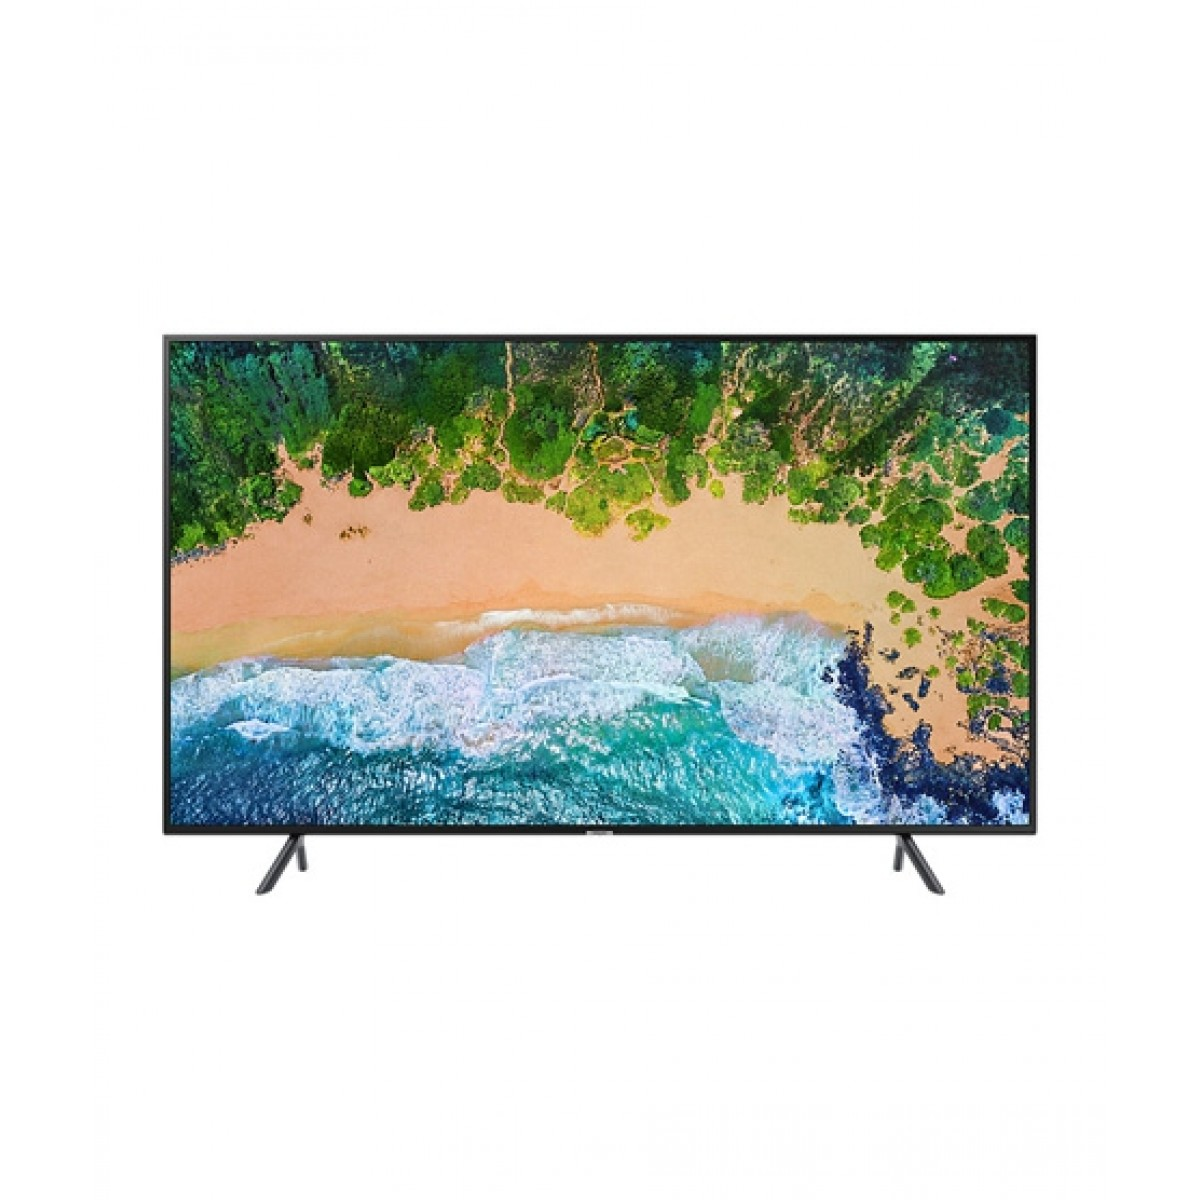 "Samsung 55"" 4K UHD Smart LED TV (55NU7100) - Without Warranty"